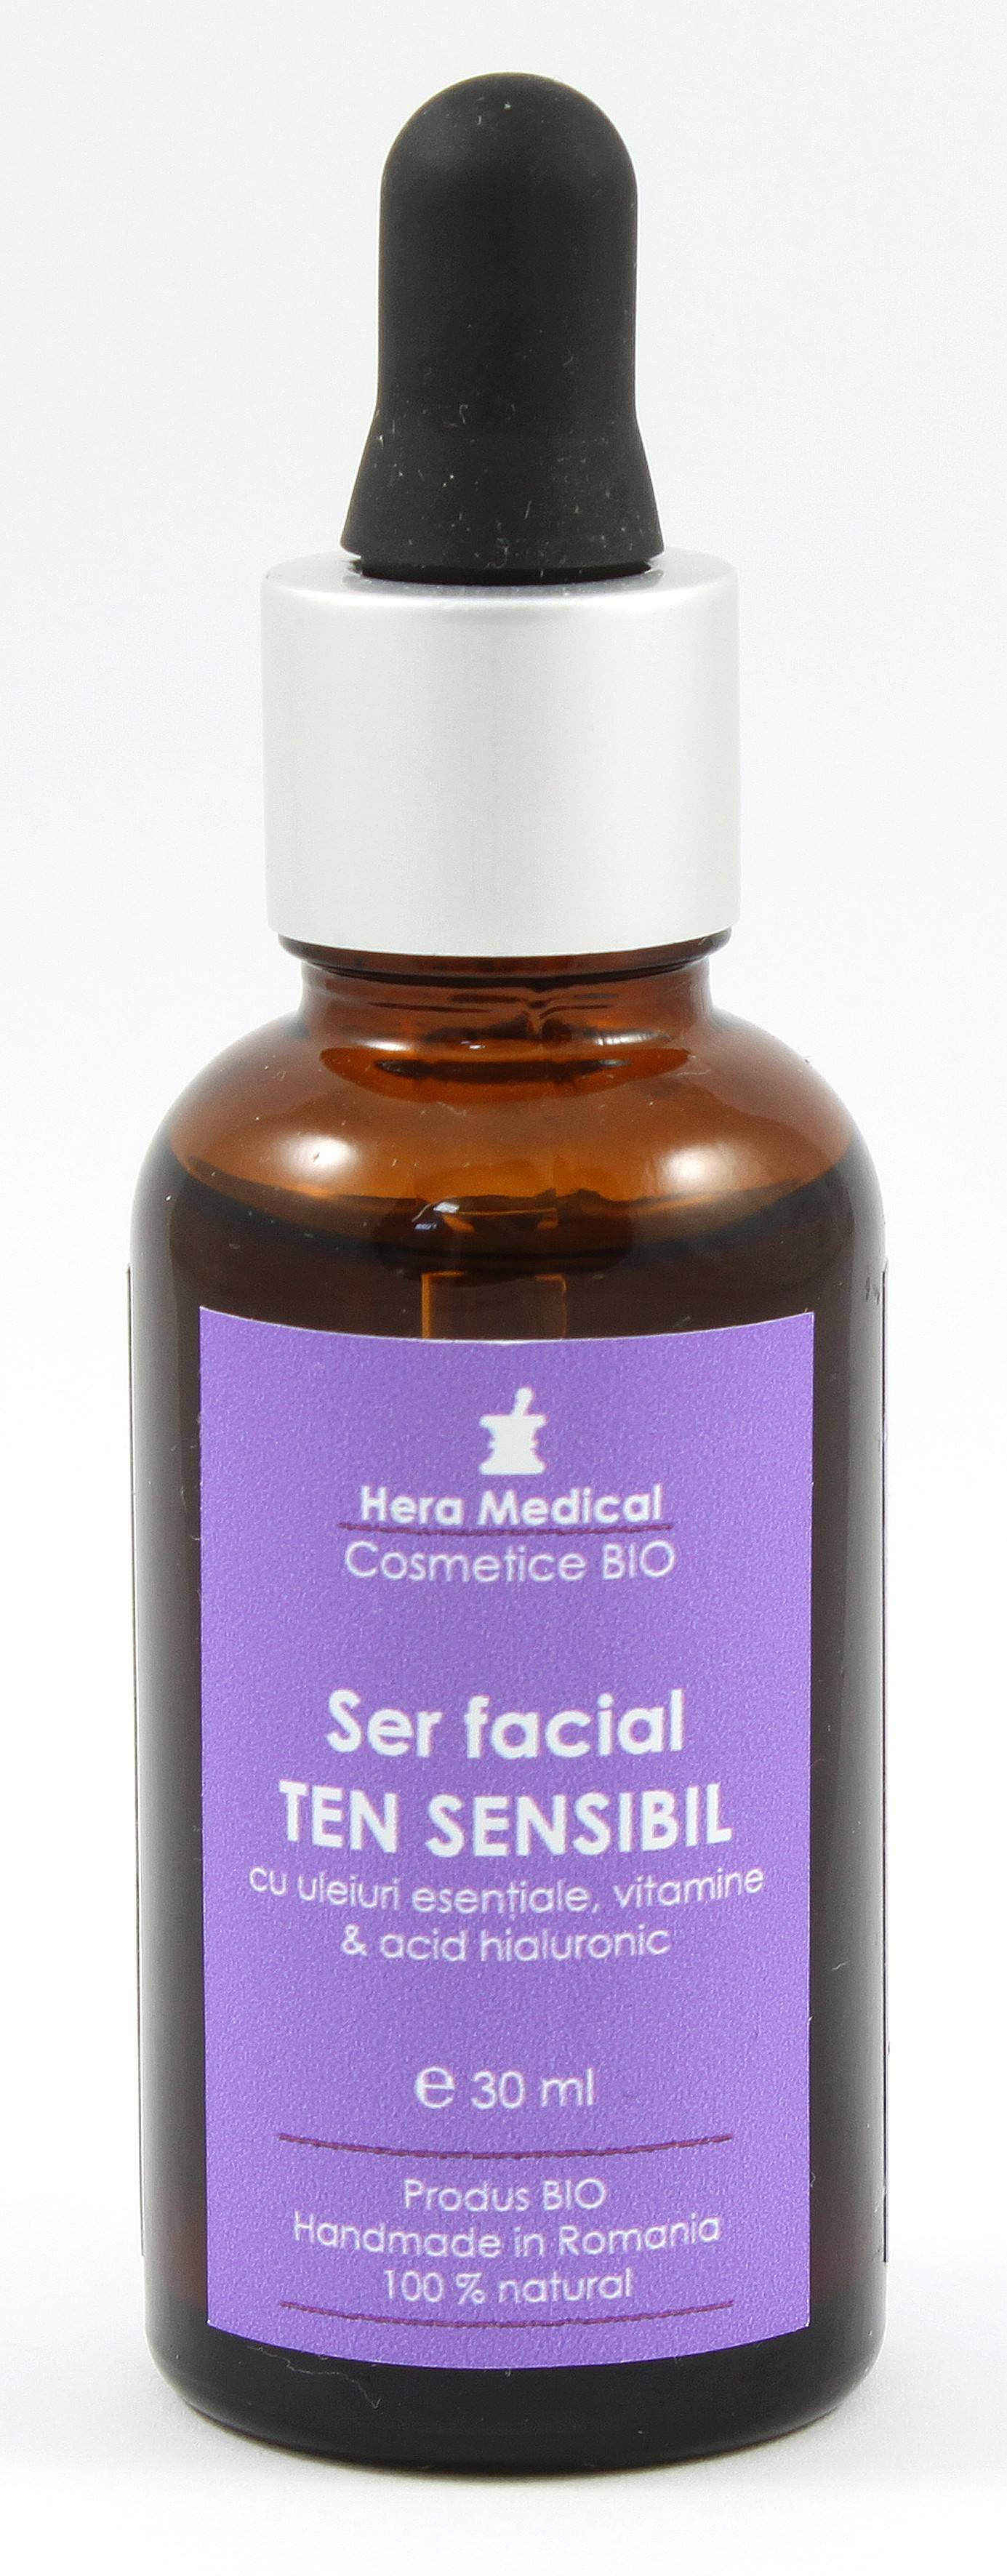 ser facial anti-aging sensitive 30 ml